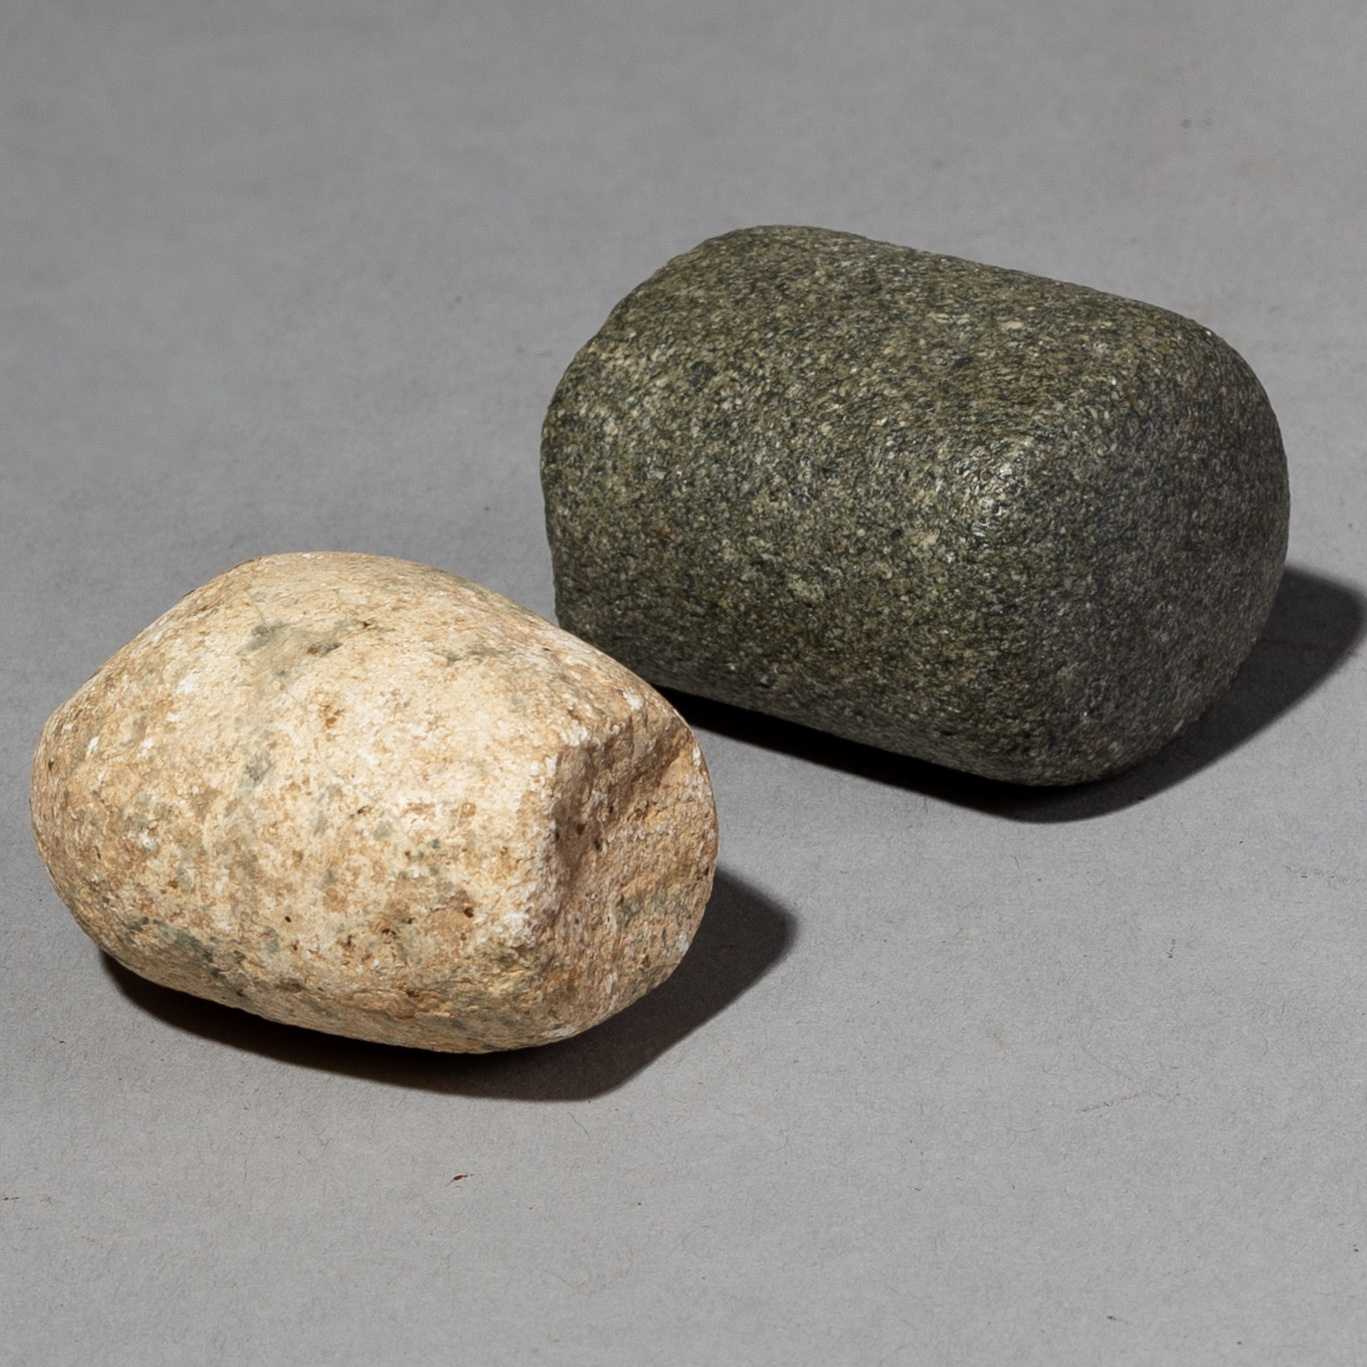 2 ANCIENT CYLINDRICAL GRINDING STONES FROM THE SAHARA ( No 2153 )